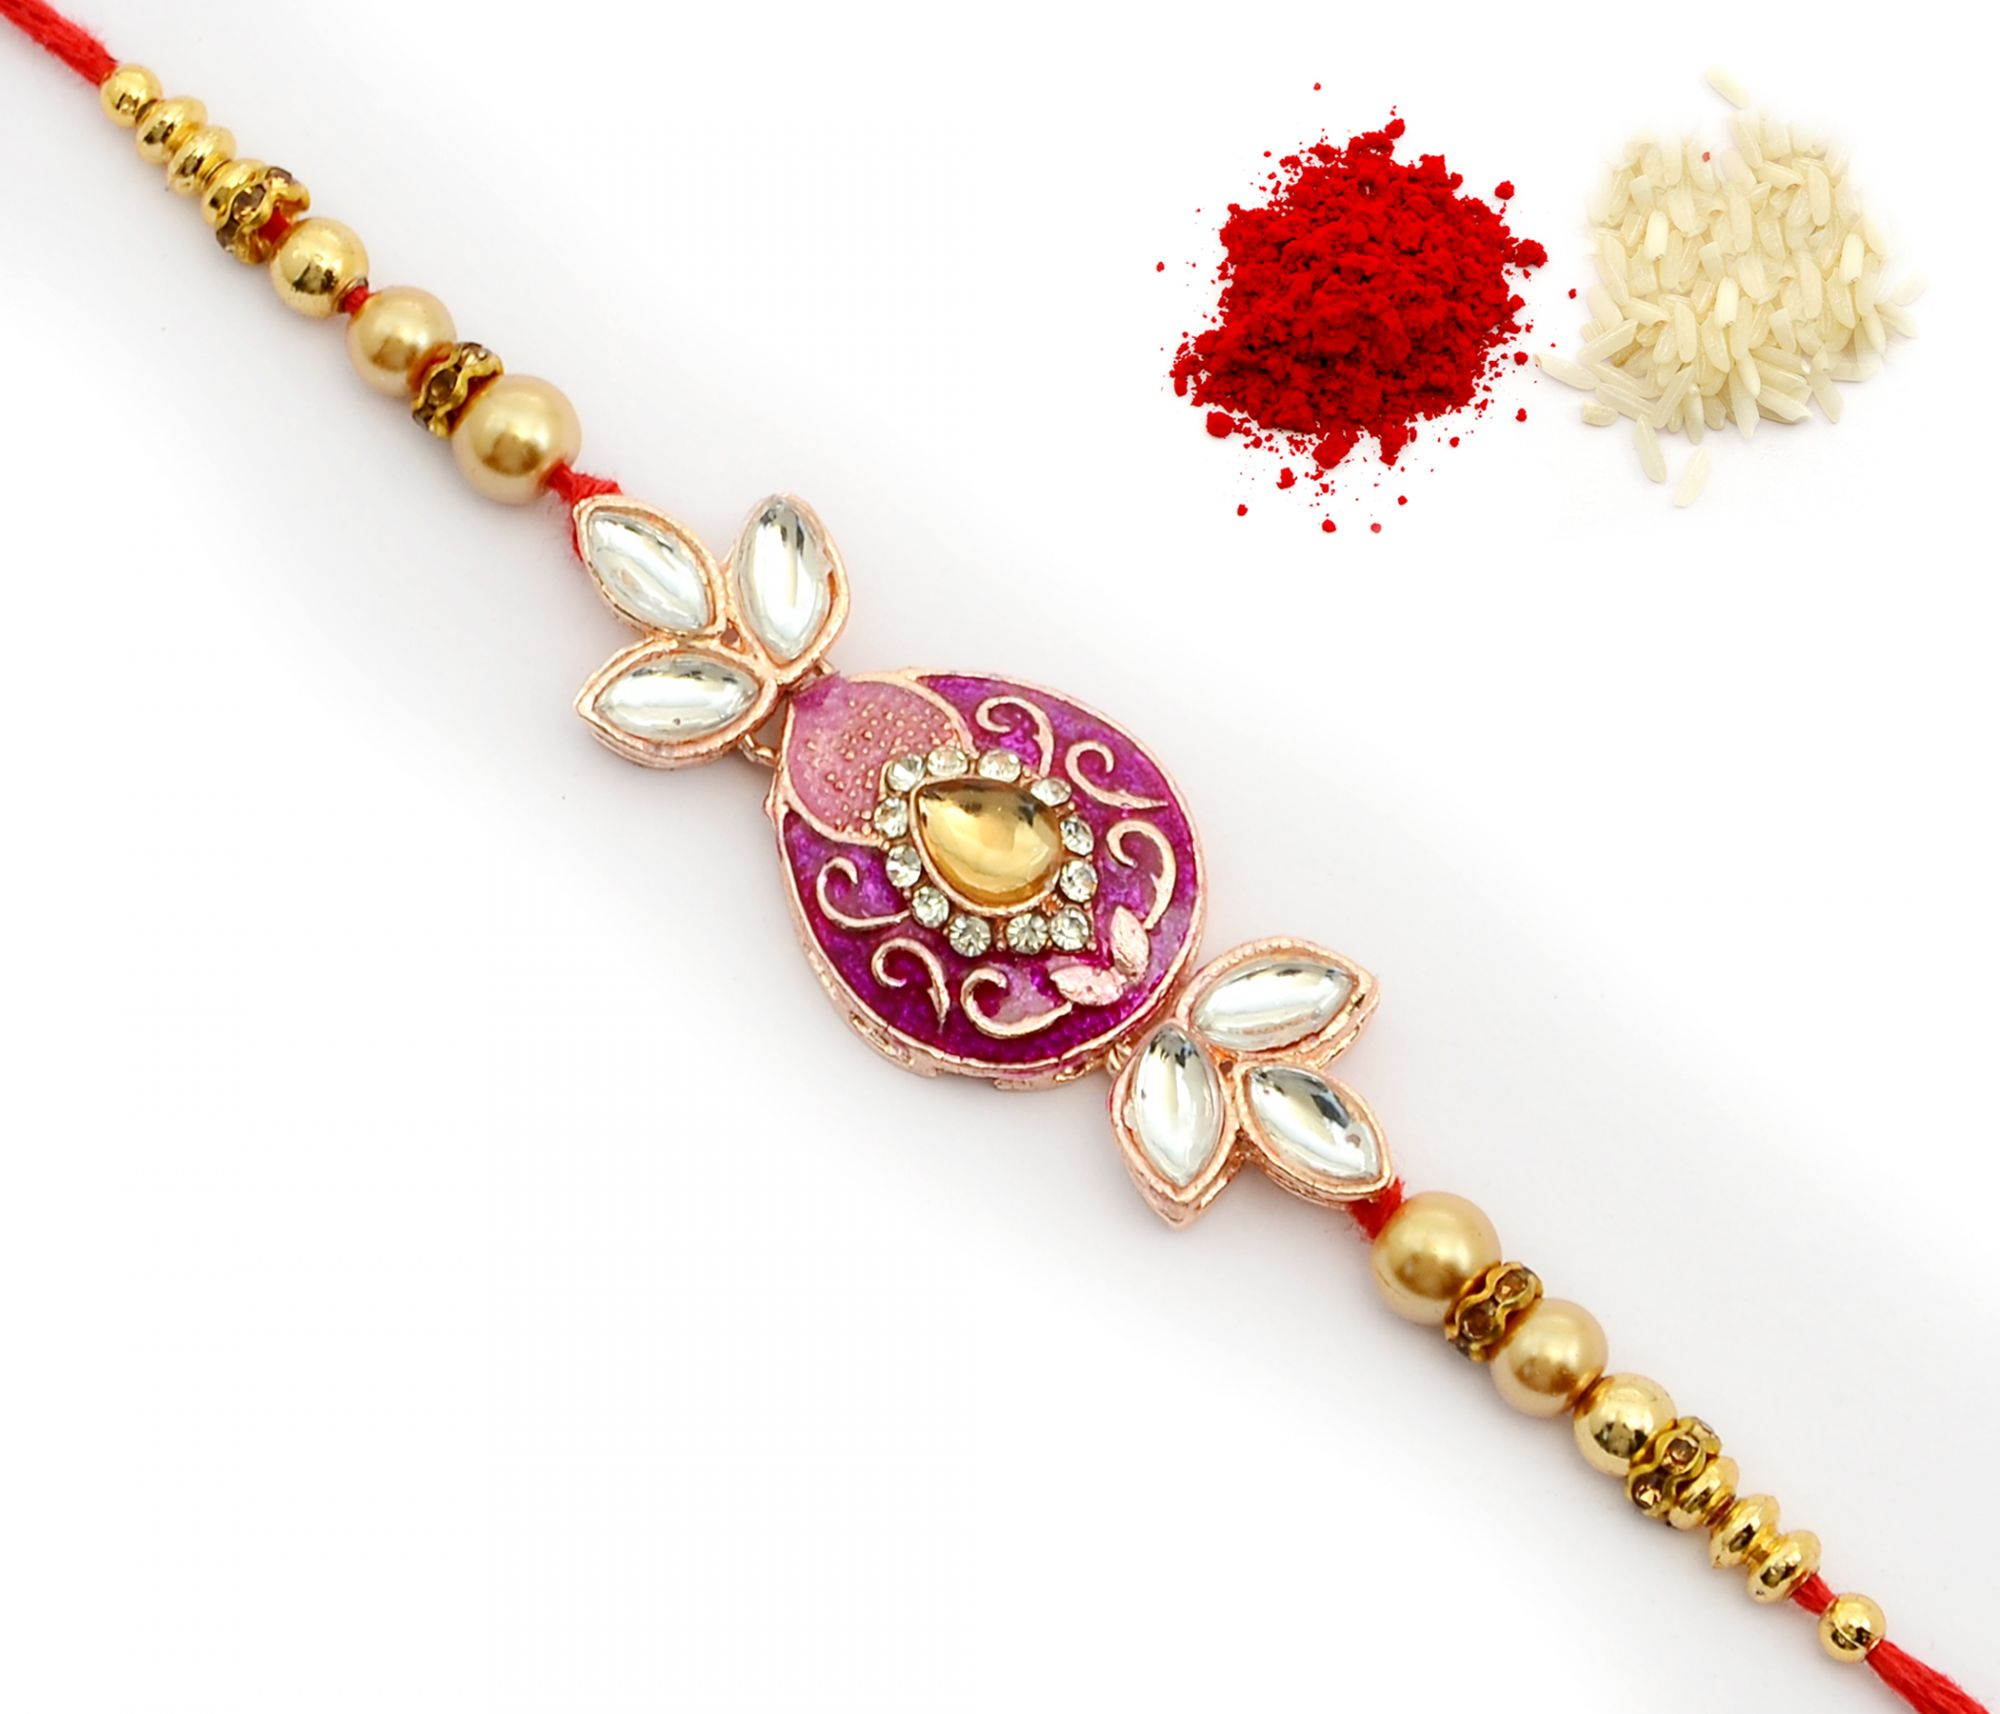 COLOURFUL KUNDAN ALLOY METAL WITH HANDCRAFTED BEADS RAKHI